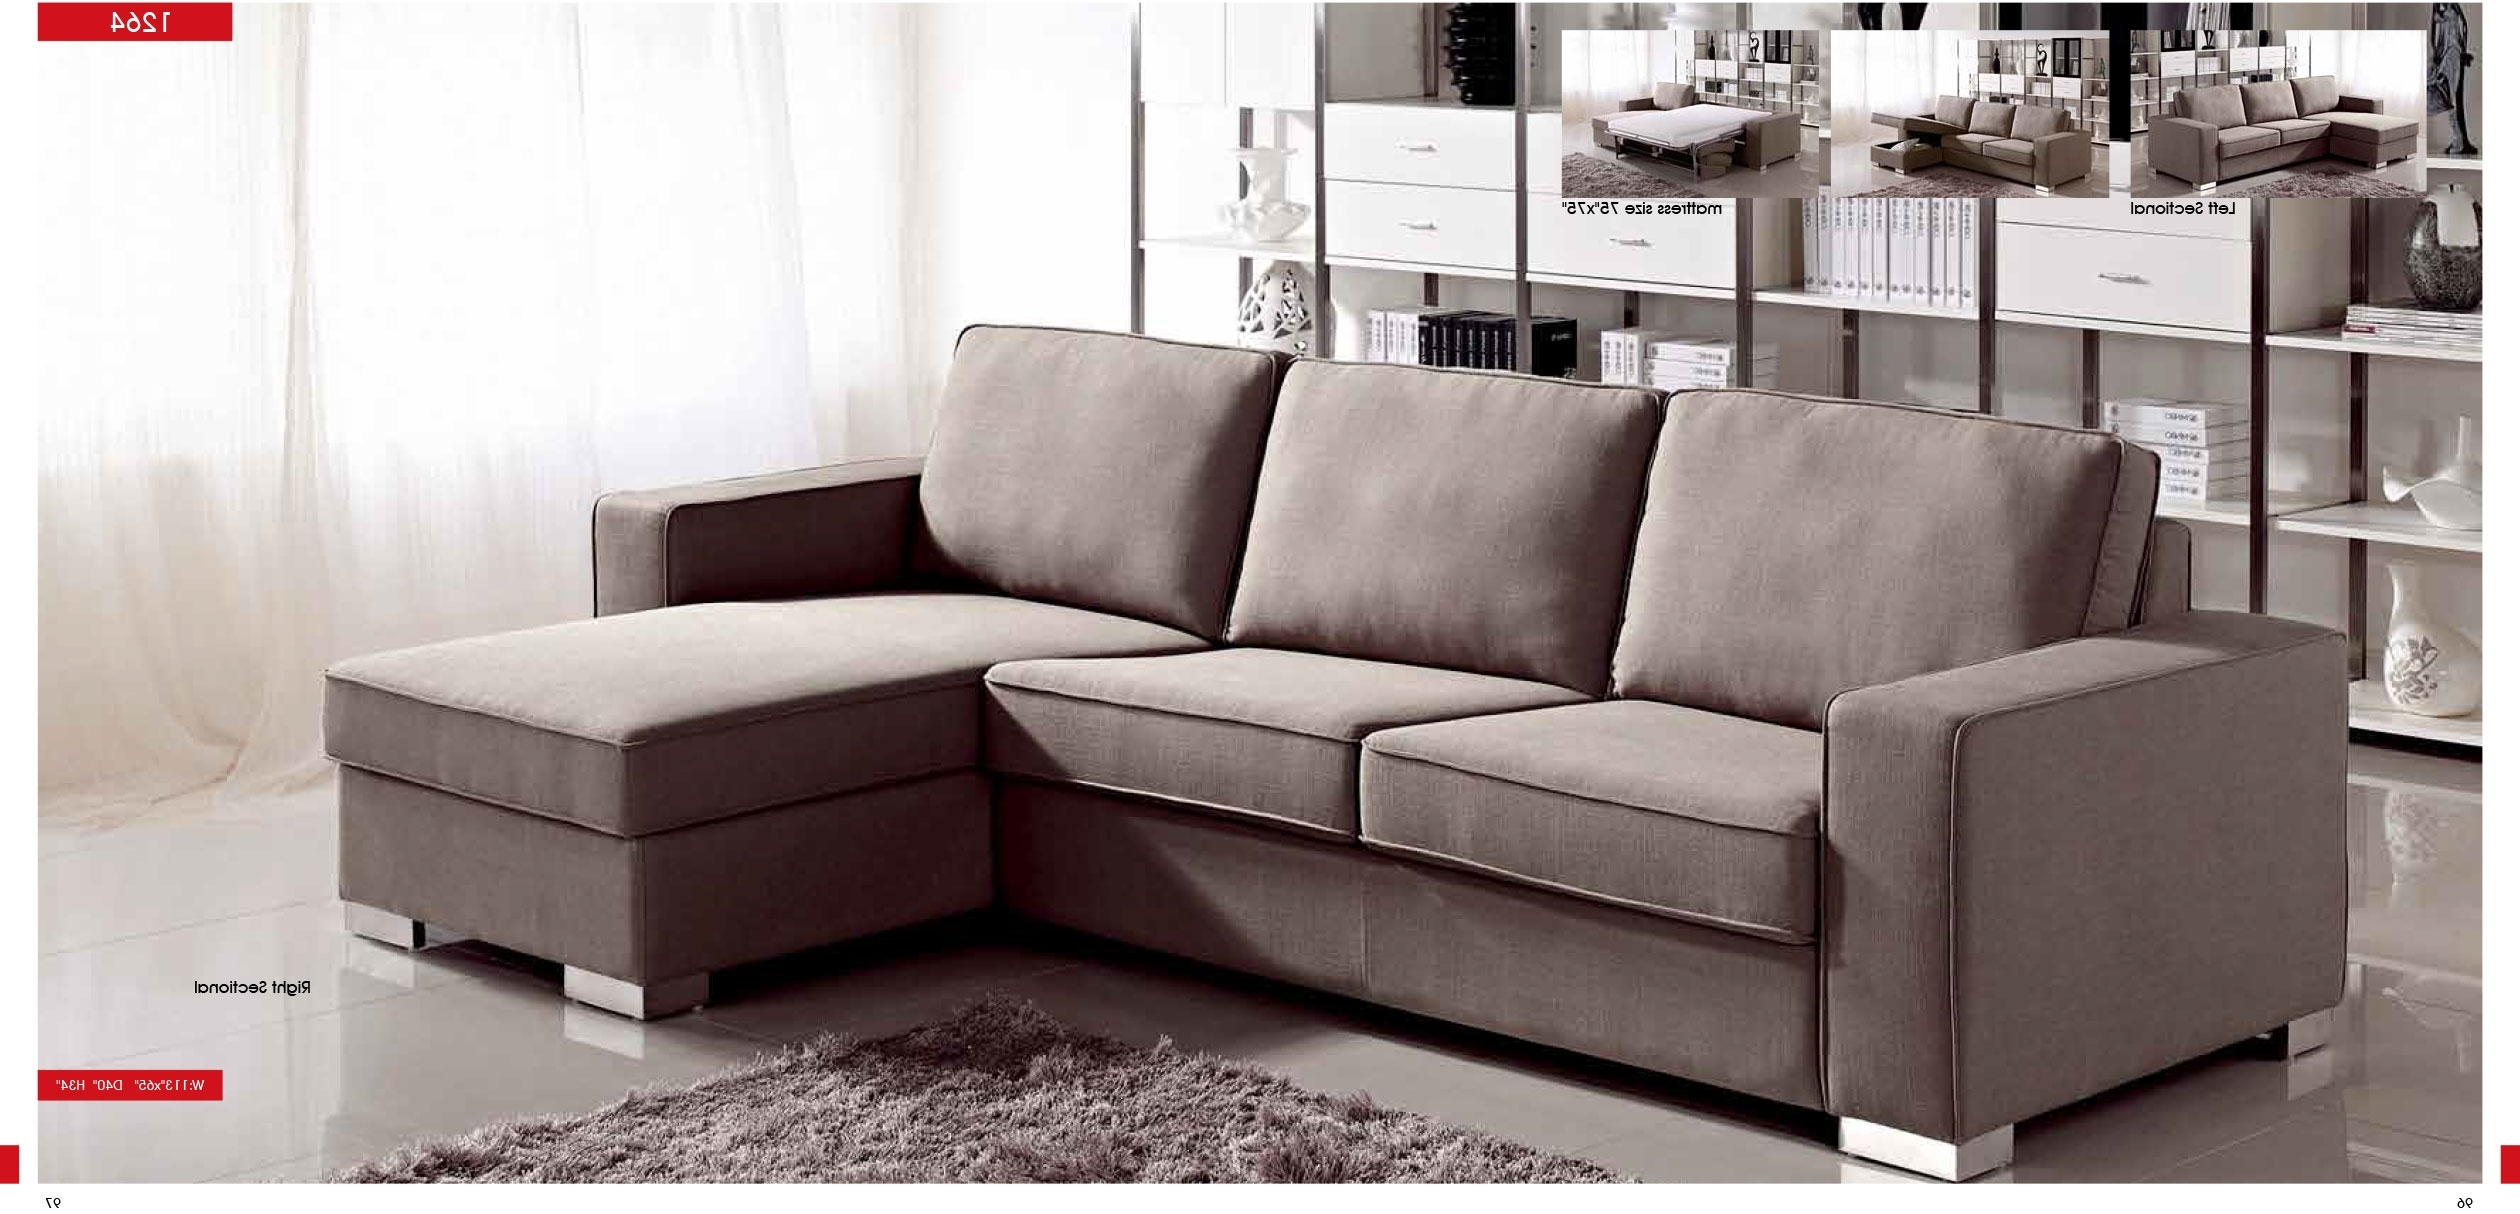 Most Current Sectional Sofas In San Antonio In Sectionals : Sa Furniture, San Antonio Furniture Of Texas (View 7 of 15)